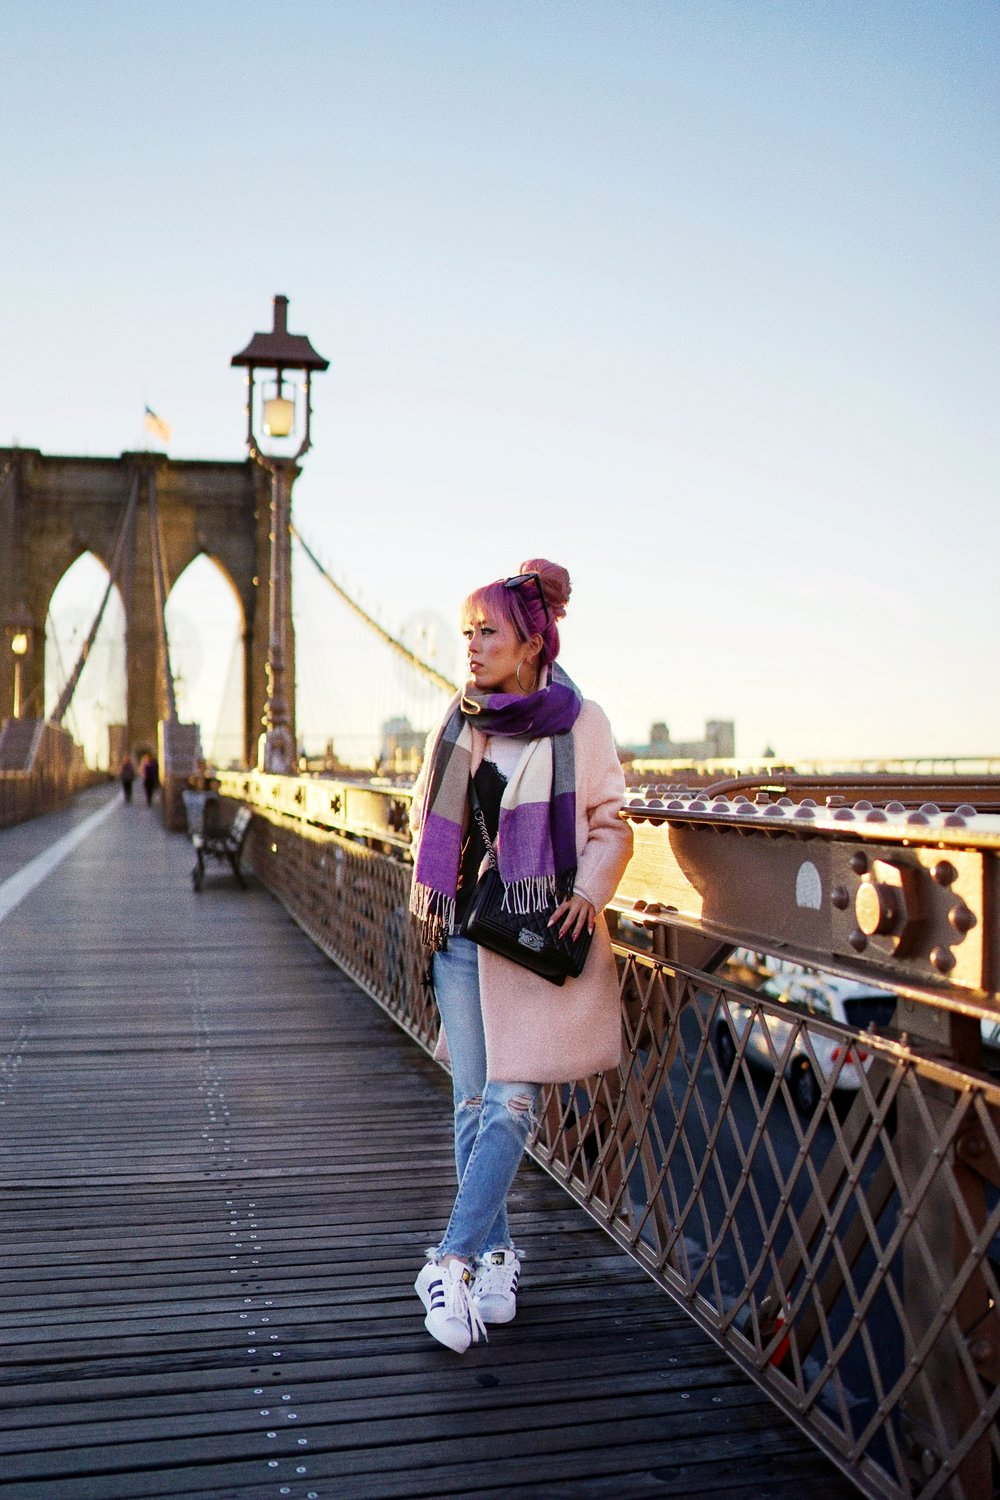 GAP Scarf-Zara pink coat-MOUSSY- frayed hem jeans- CHANEL Lambskin Quilted Medium Boy Flap Black-Adidas Superstar Shoes-Urban Outfitters Sunglasses-Aika's Love Closet-Sealtle fashion style blogger from japan-pink hair-brooklyn bridge-new york-city 13